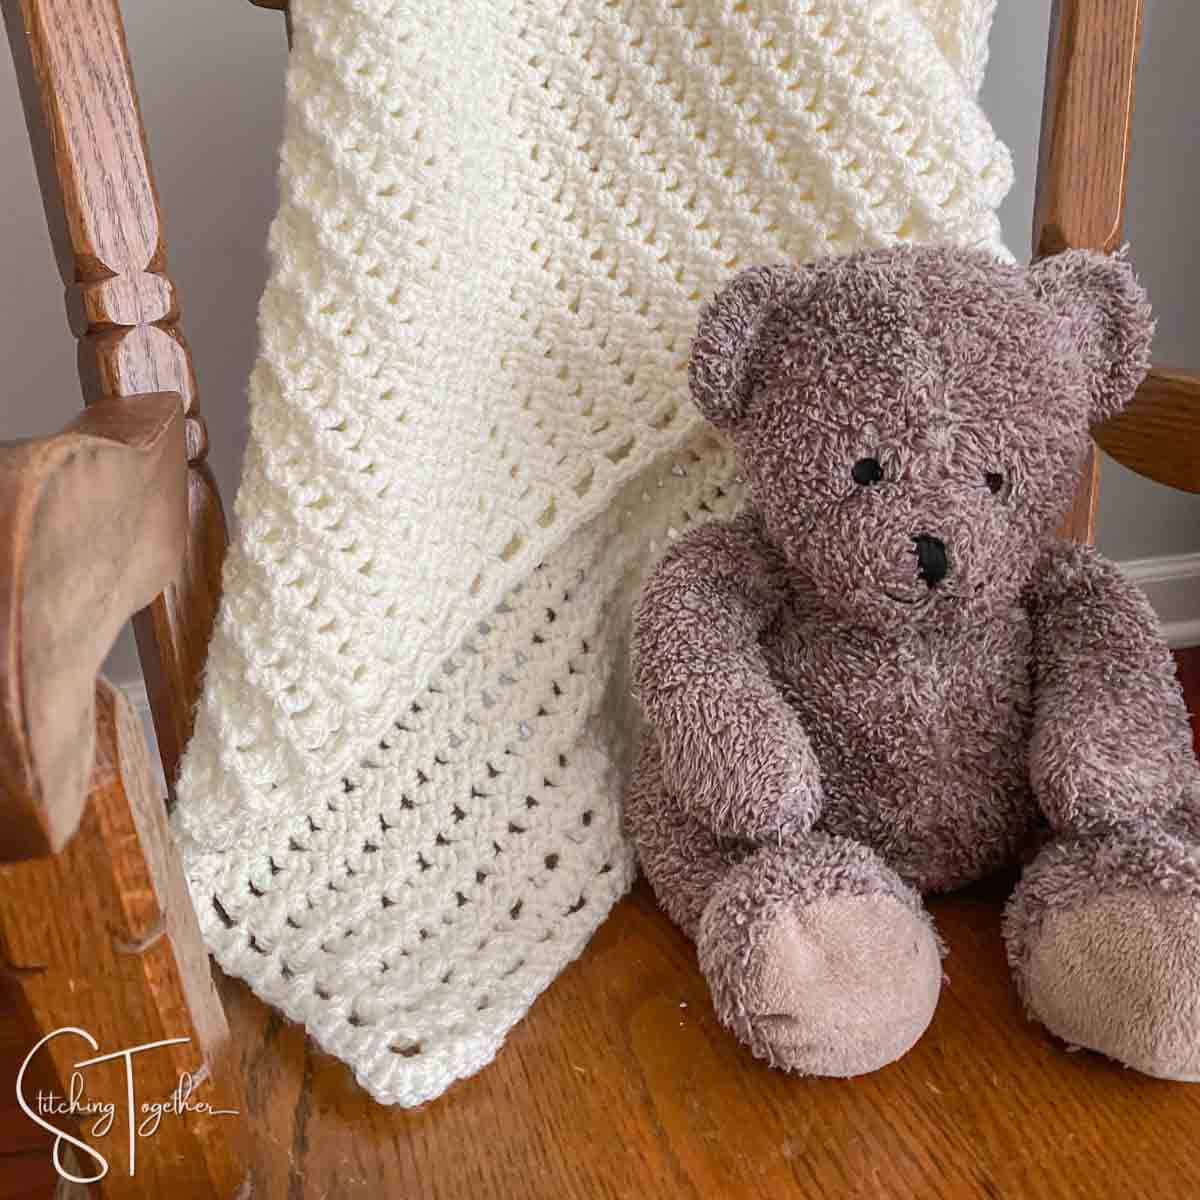 lacy crochet baby blanket draped on chair with stuffed bear next to it